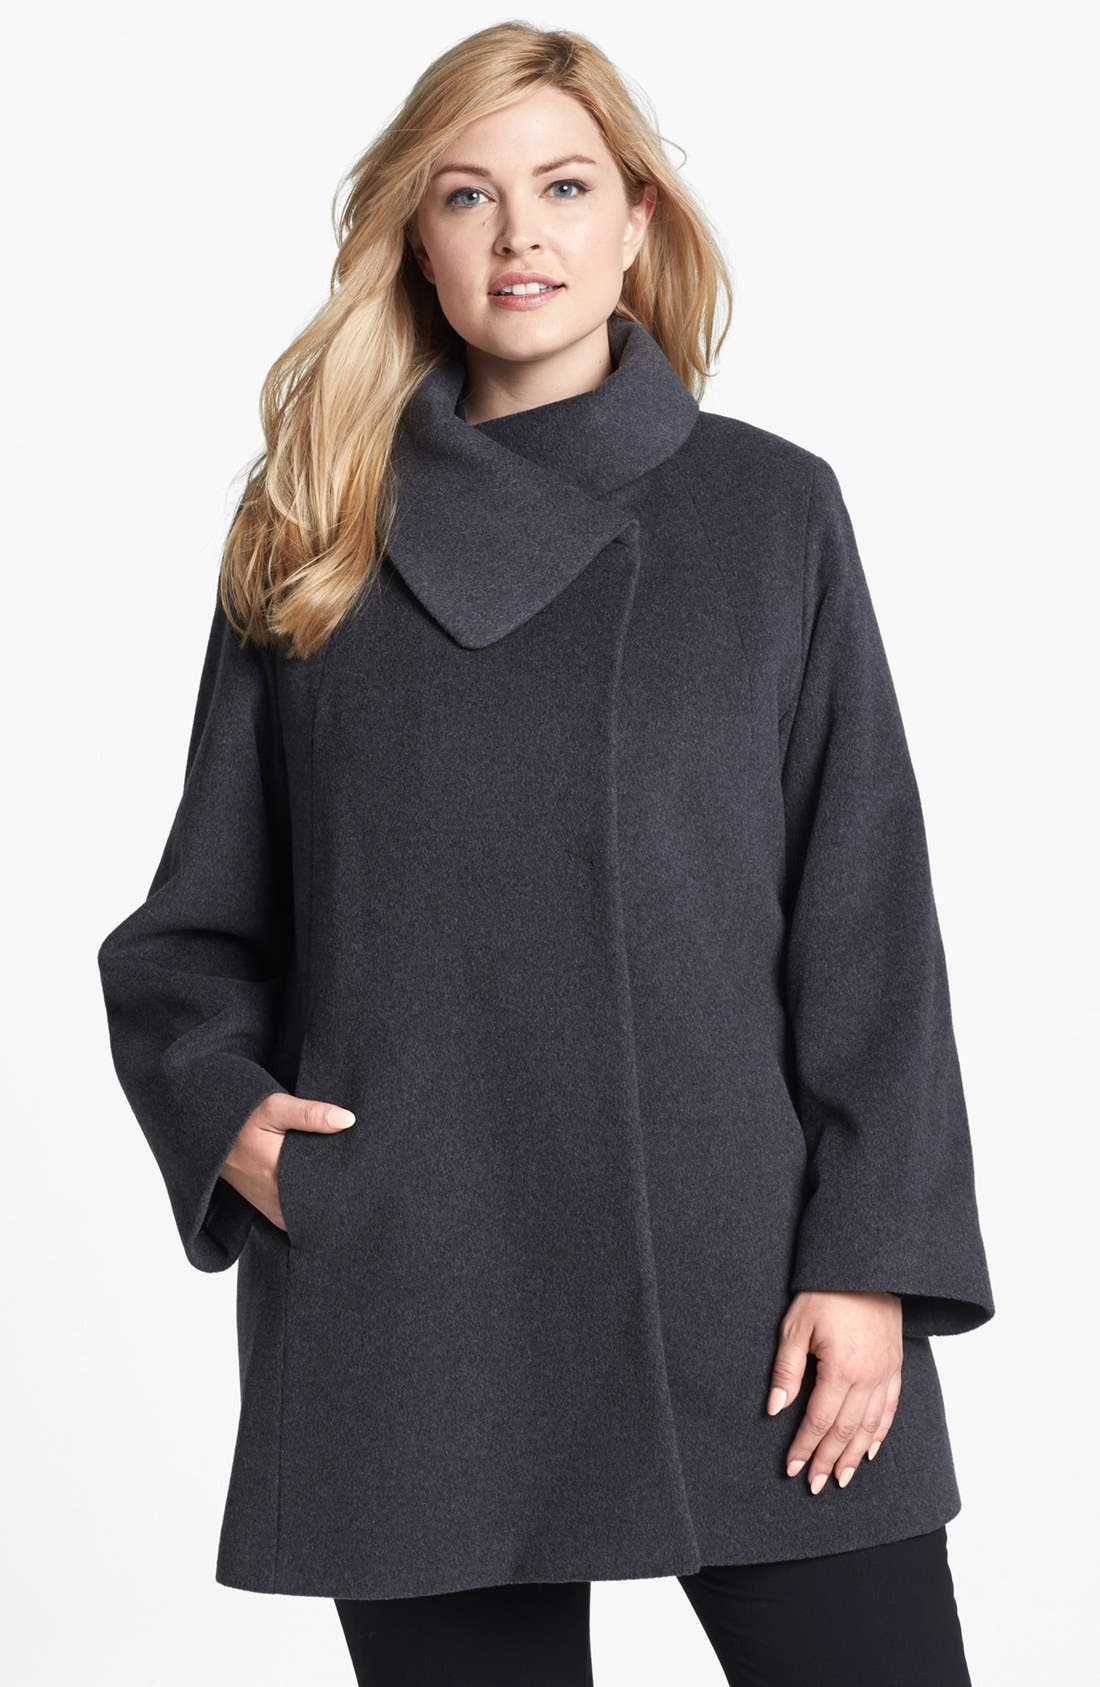 Main Image - Cinzia Rocca Due Portrait Collar Wool & Angora Blend Walking Coat (Plus Size)